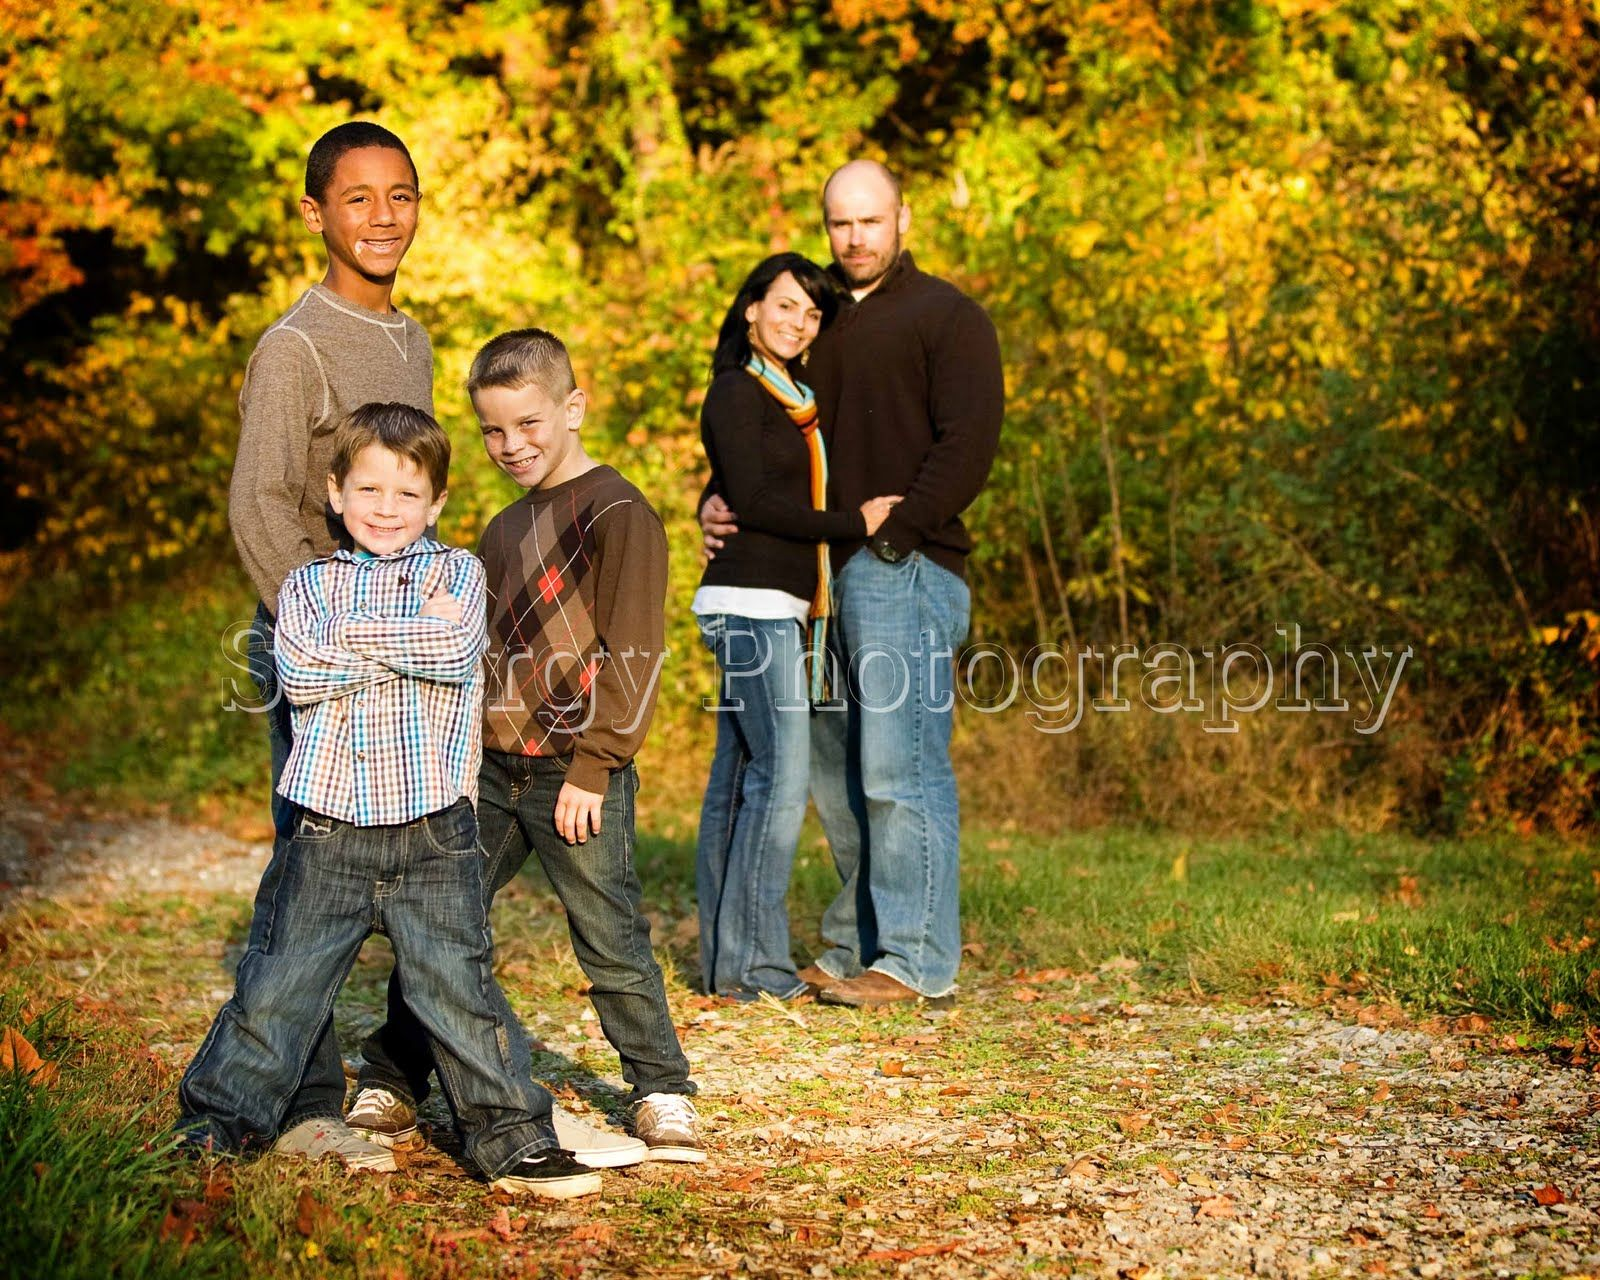 best 25 fall family portraits ideas on pinterest fall family photos fall family photography. Black Bedroom Furniture Sets. Home Design Ideas